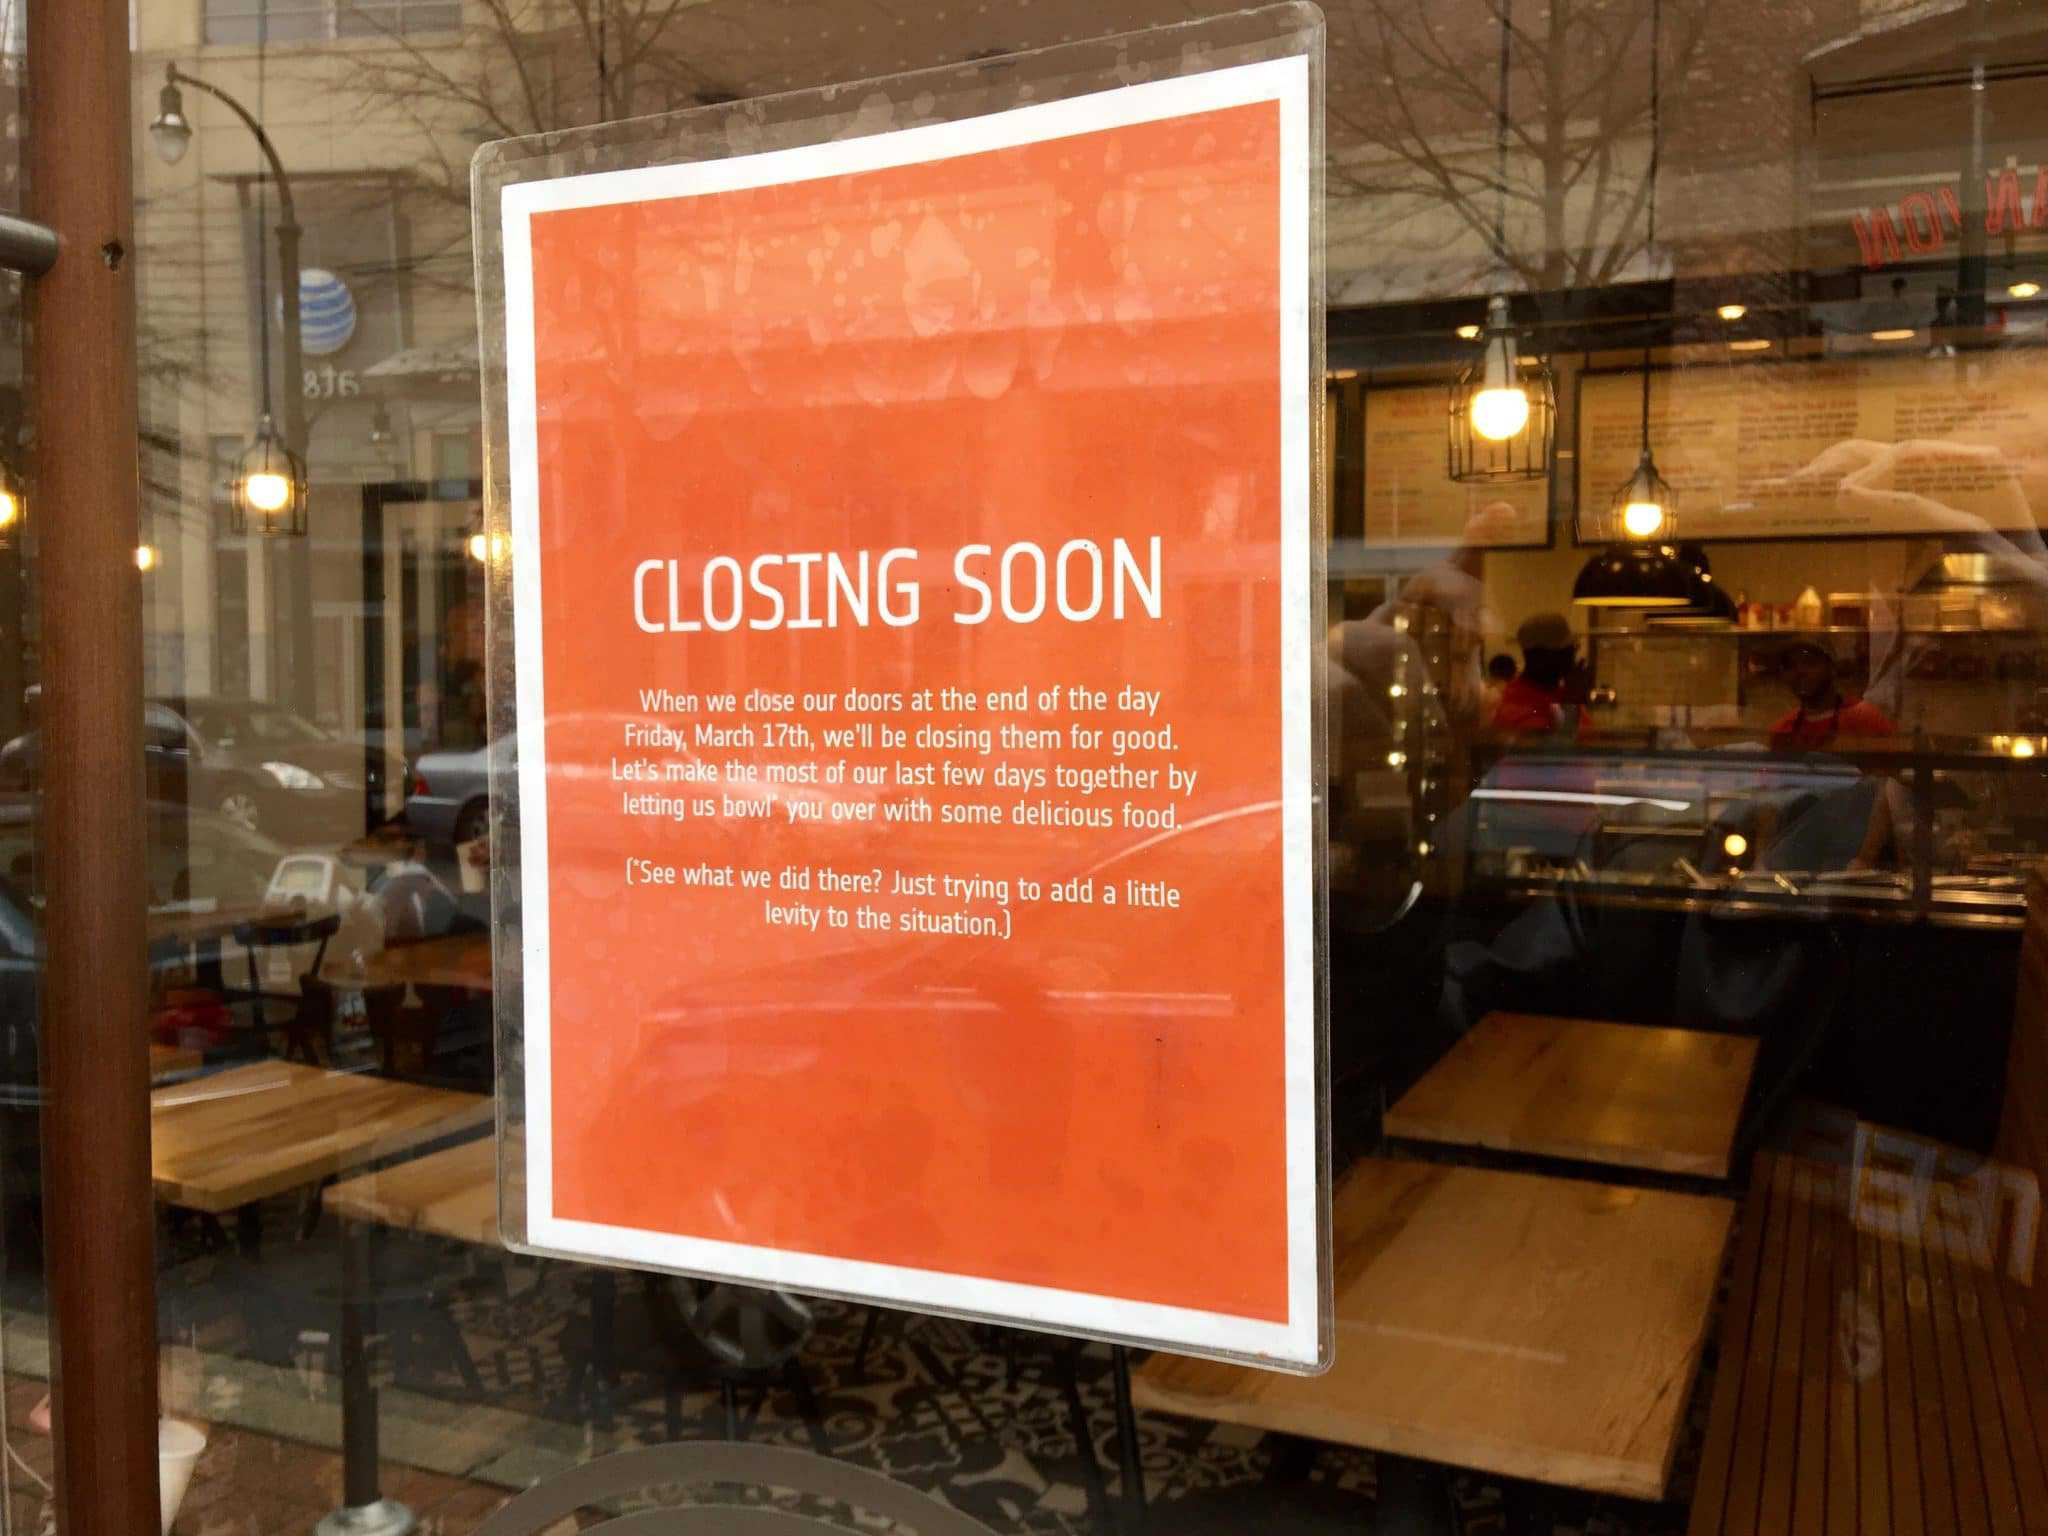 ShopHouse restaurants to close next week